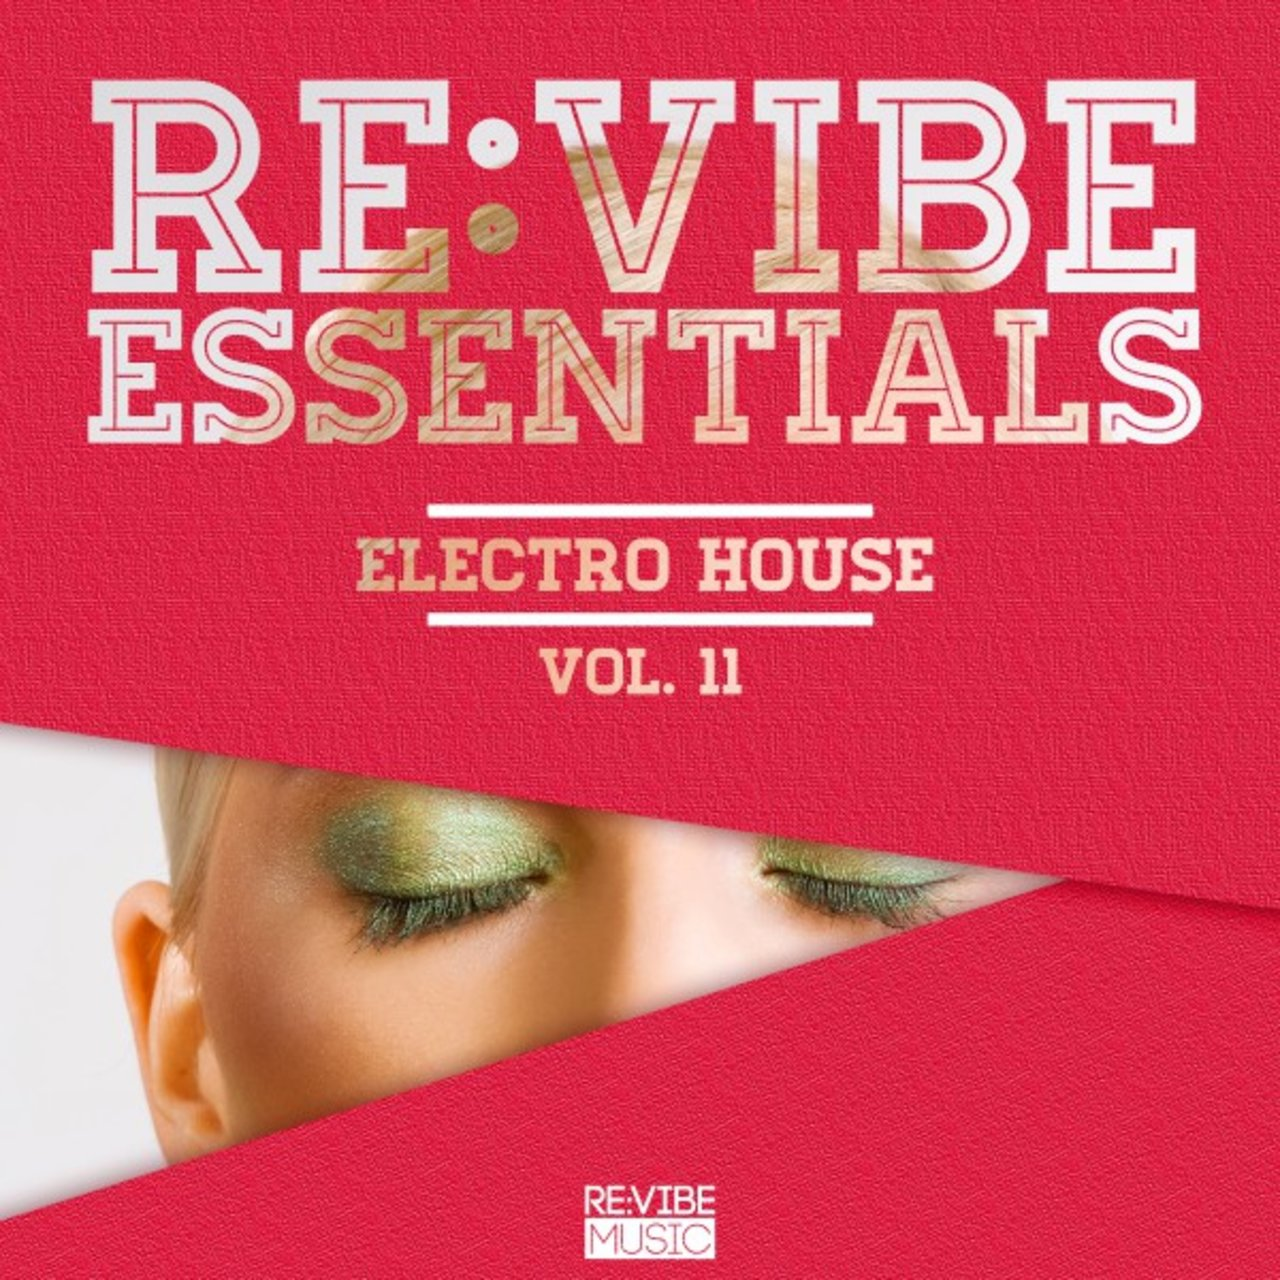 Re:Vibe Essentials - Electro House, Vol. 11